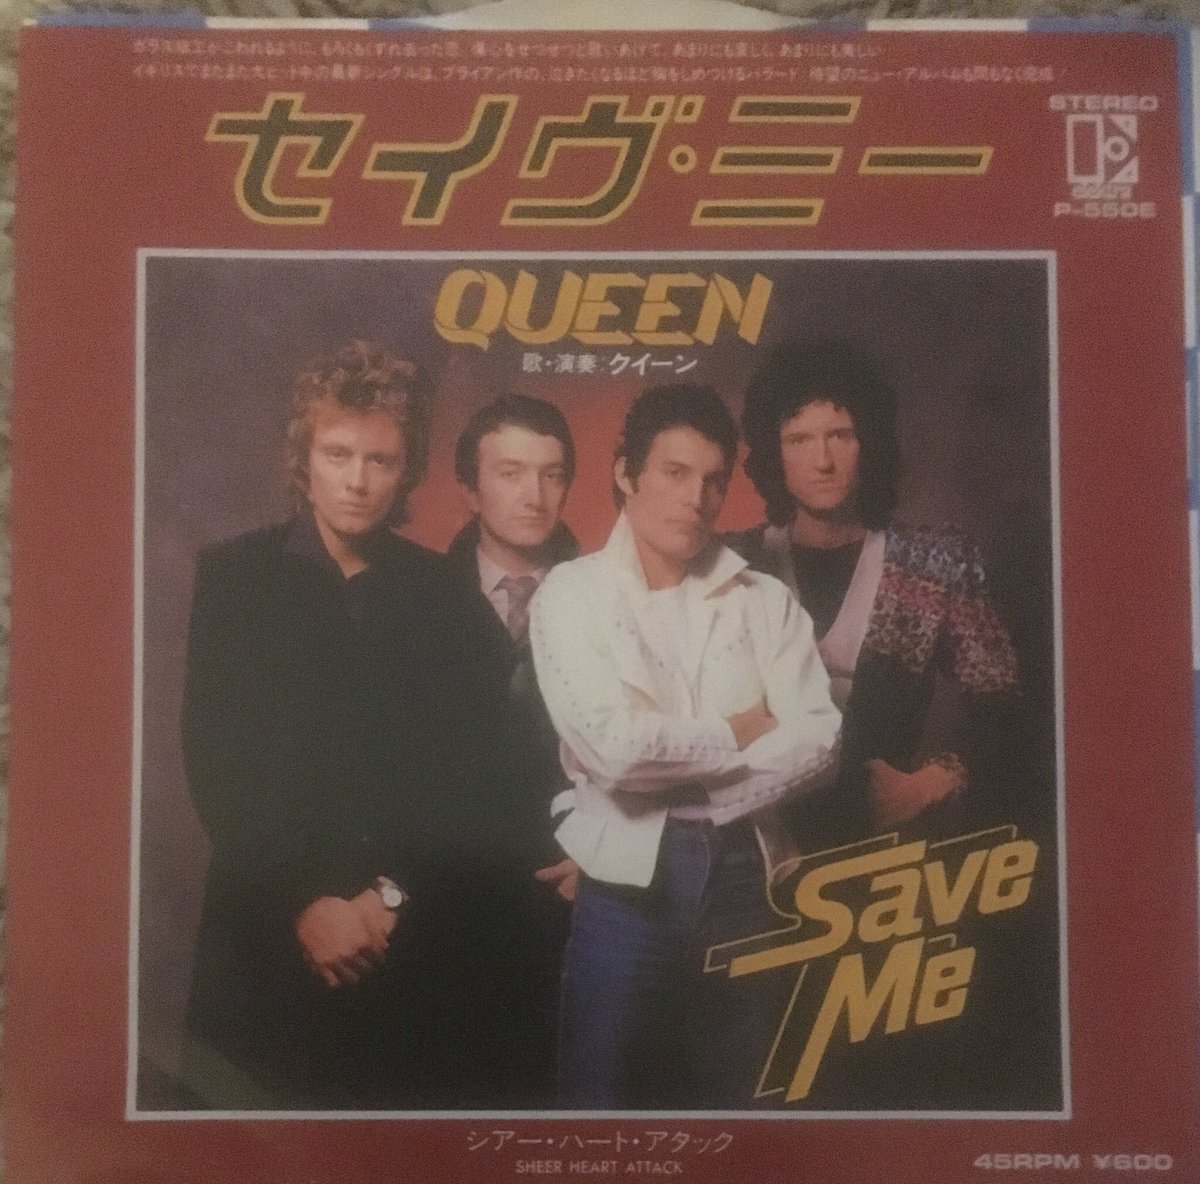 """229/ """"Save Me"""": 7"""" japan release with traditional picture insert &amp; backed with """"Sheer Heart Attack"""" (live). Even when the sleeve is similar to other territories, the Japanese version is still gorgeous. Peaked at no96 #Queen #FreddieMercury #BrianMay #JohnDeacon #RogerTaylor<br>http://pic.twitter.com/qESJLvwrLb"""